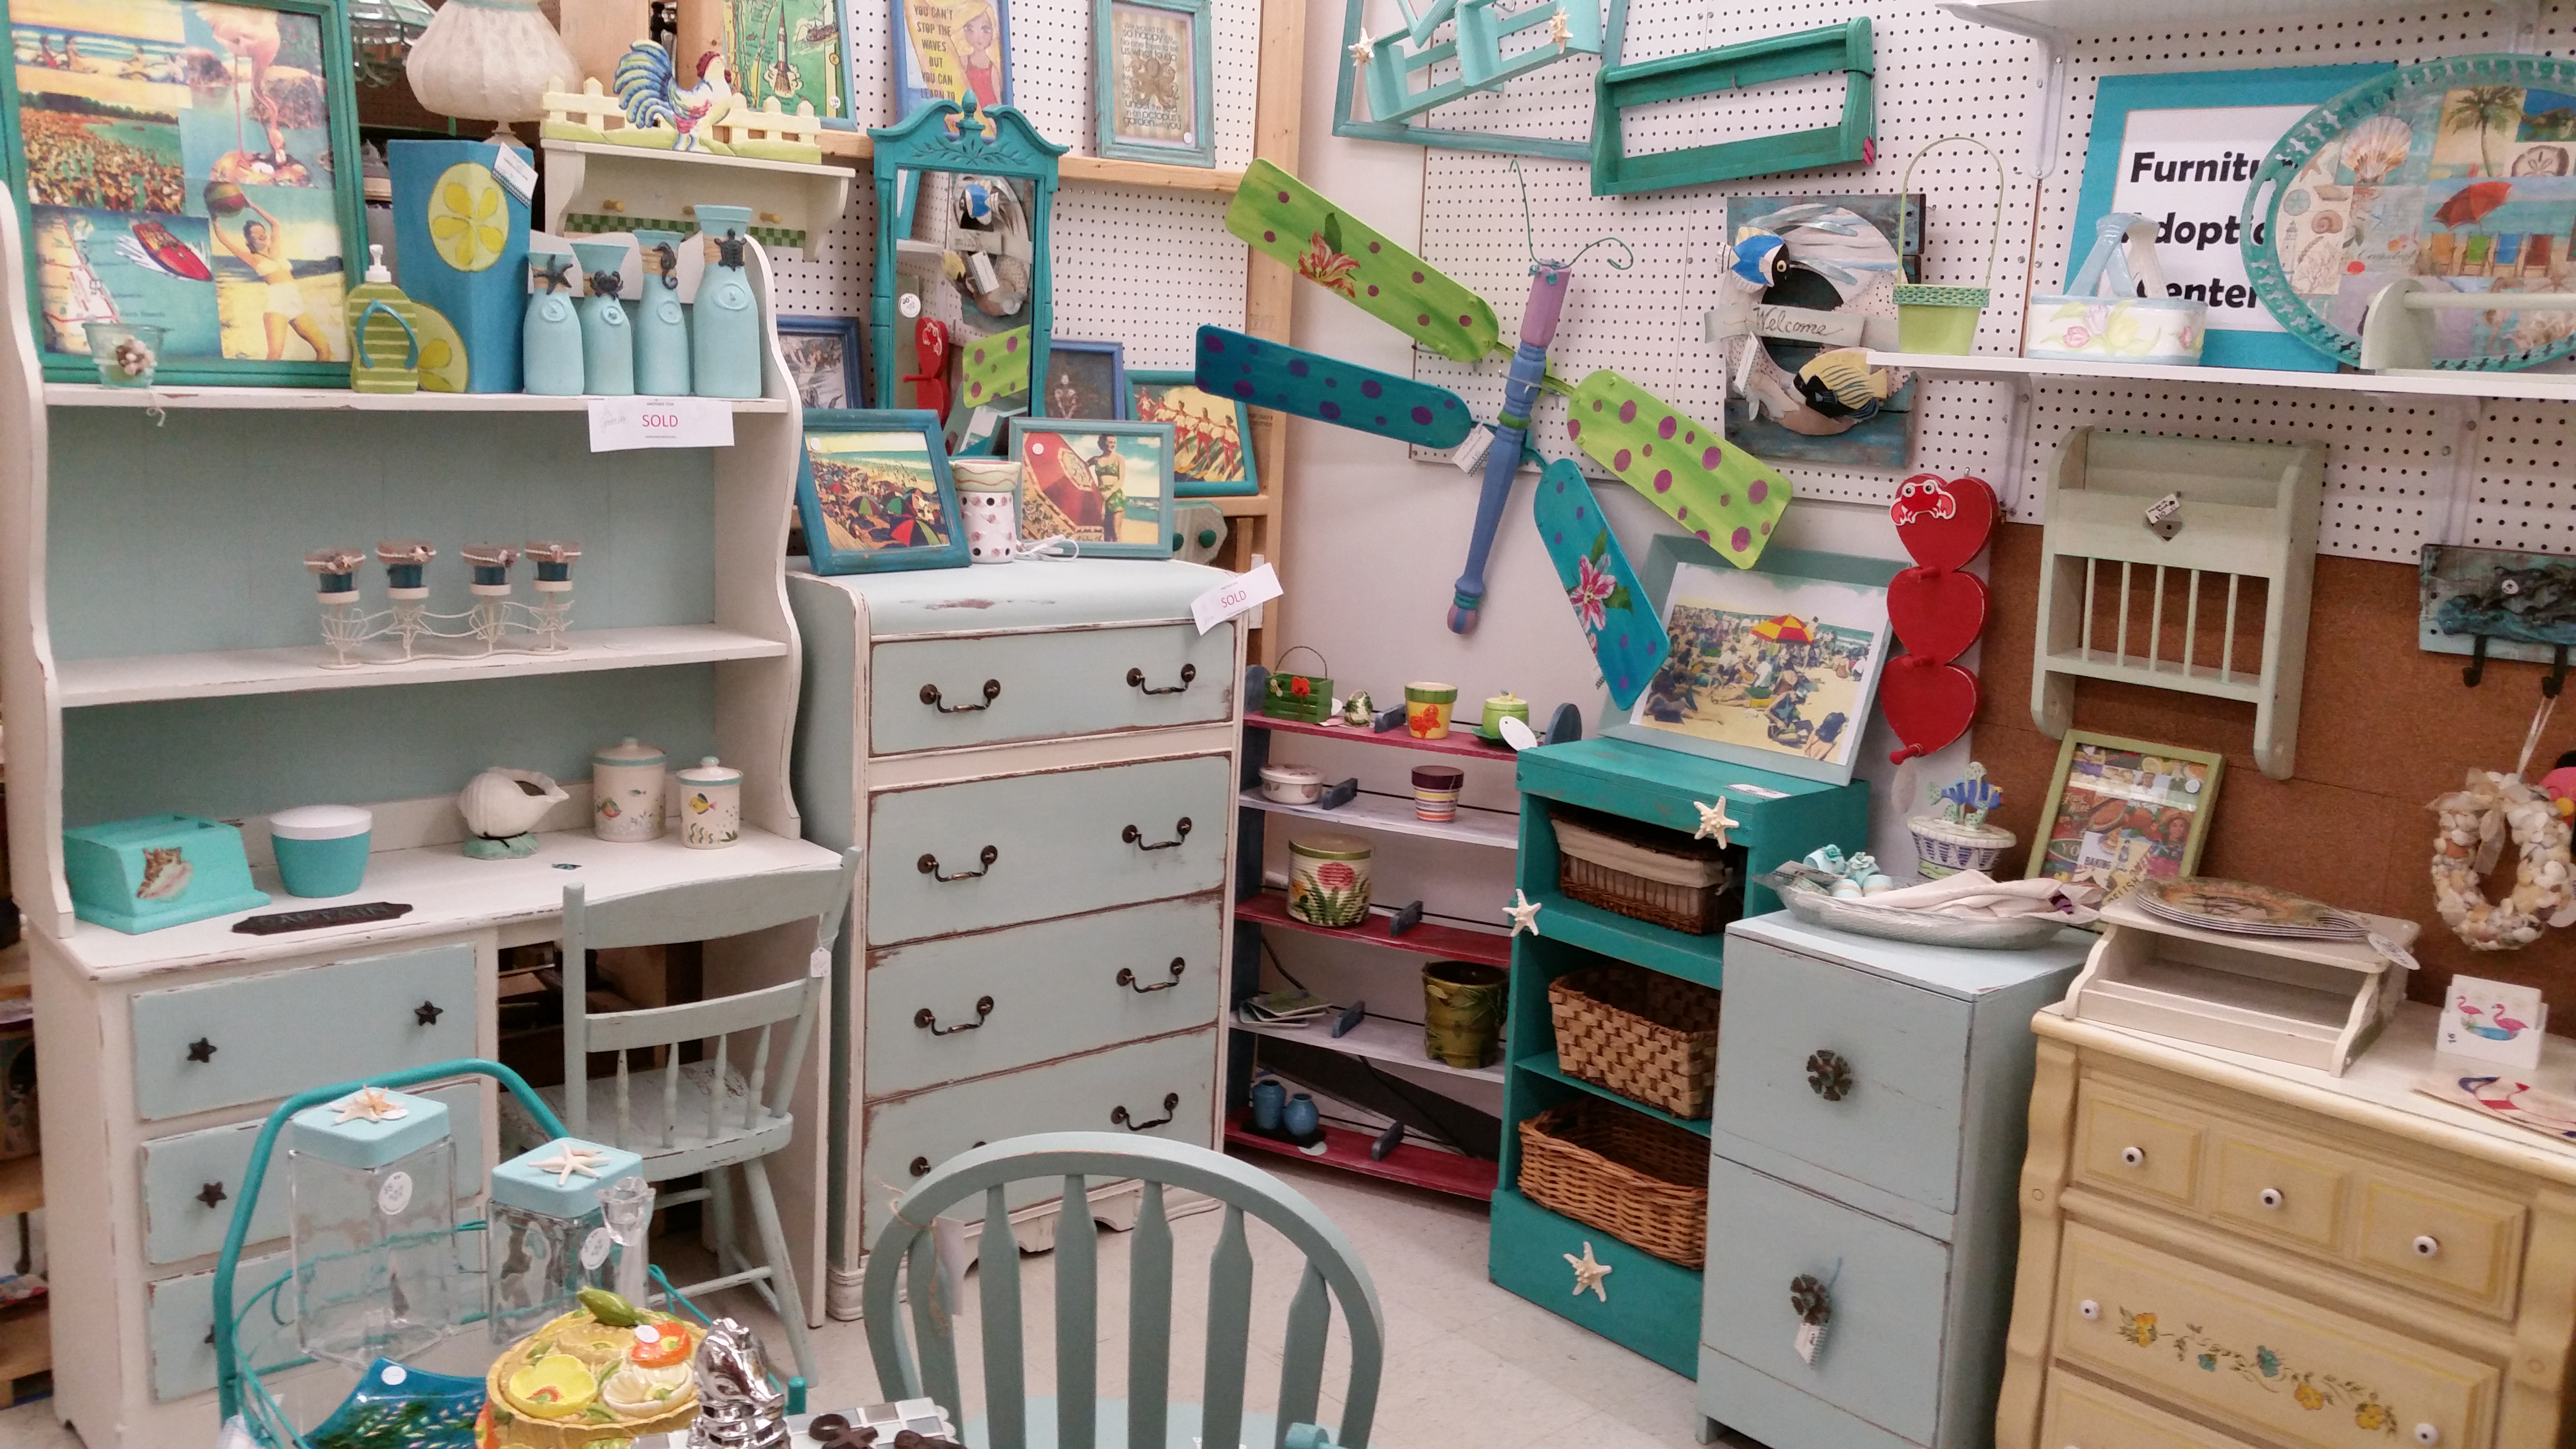 Resale Second Hand Used Merchandise Stores in Melbourne FL by